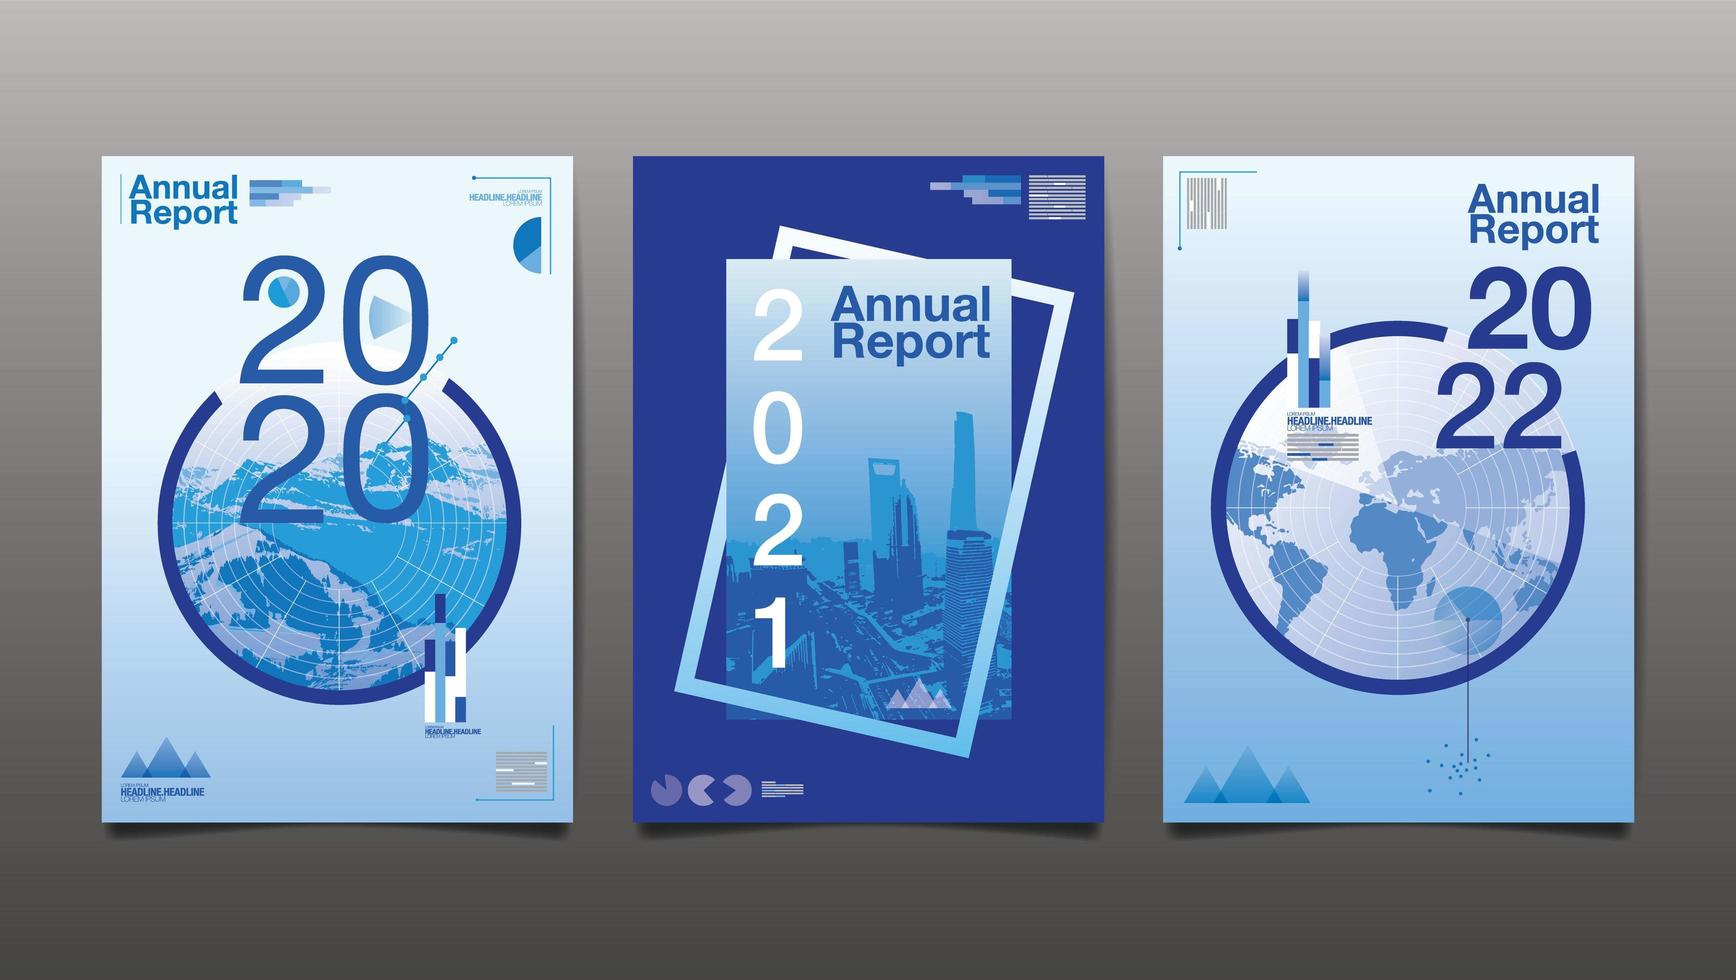 Set of There Blue Annual Report Covers  vector